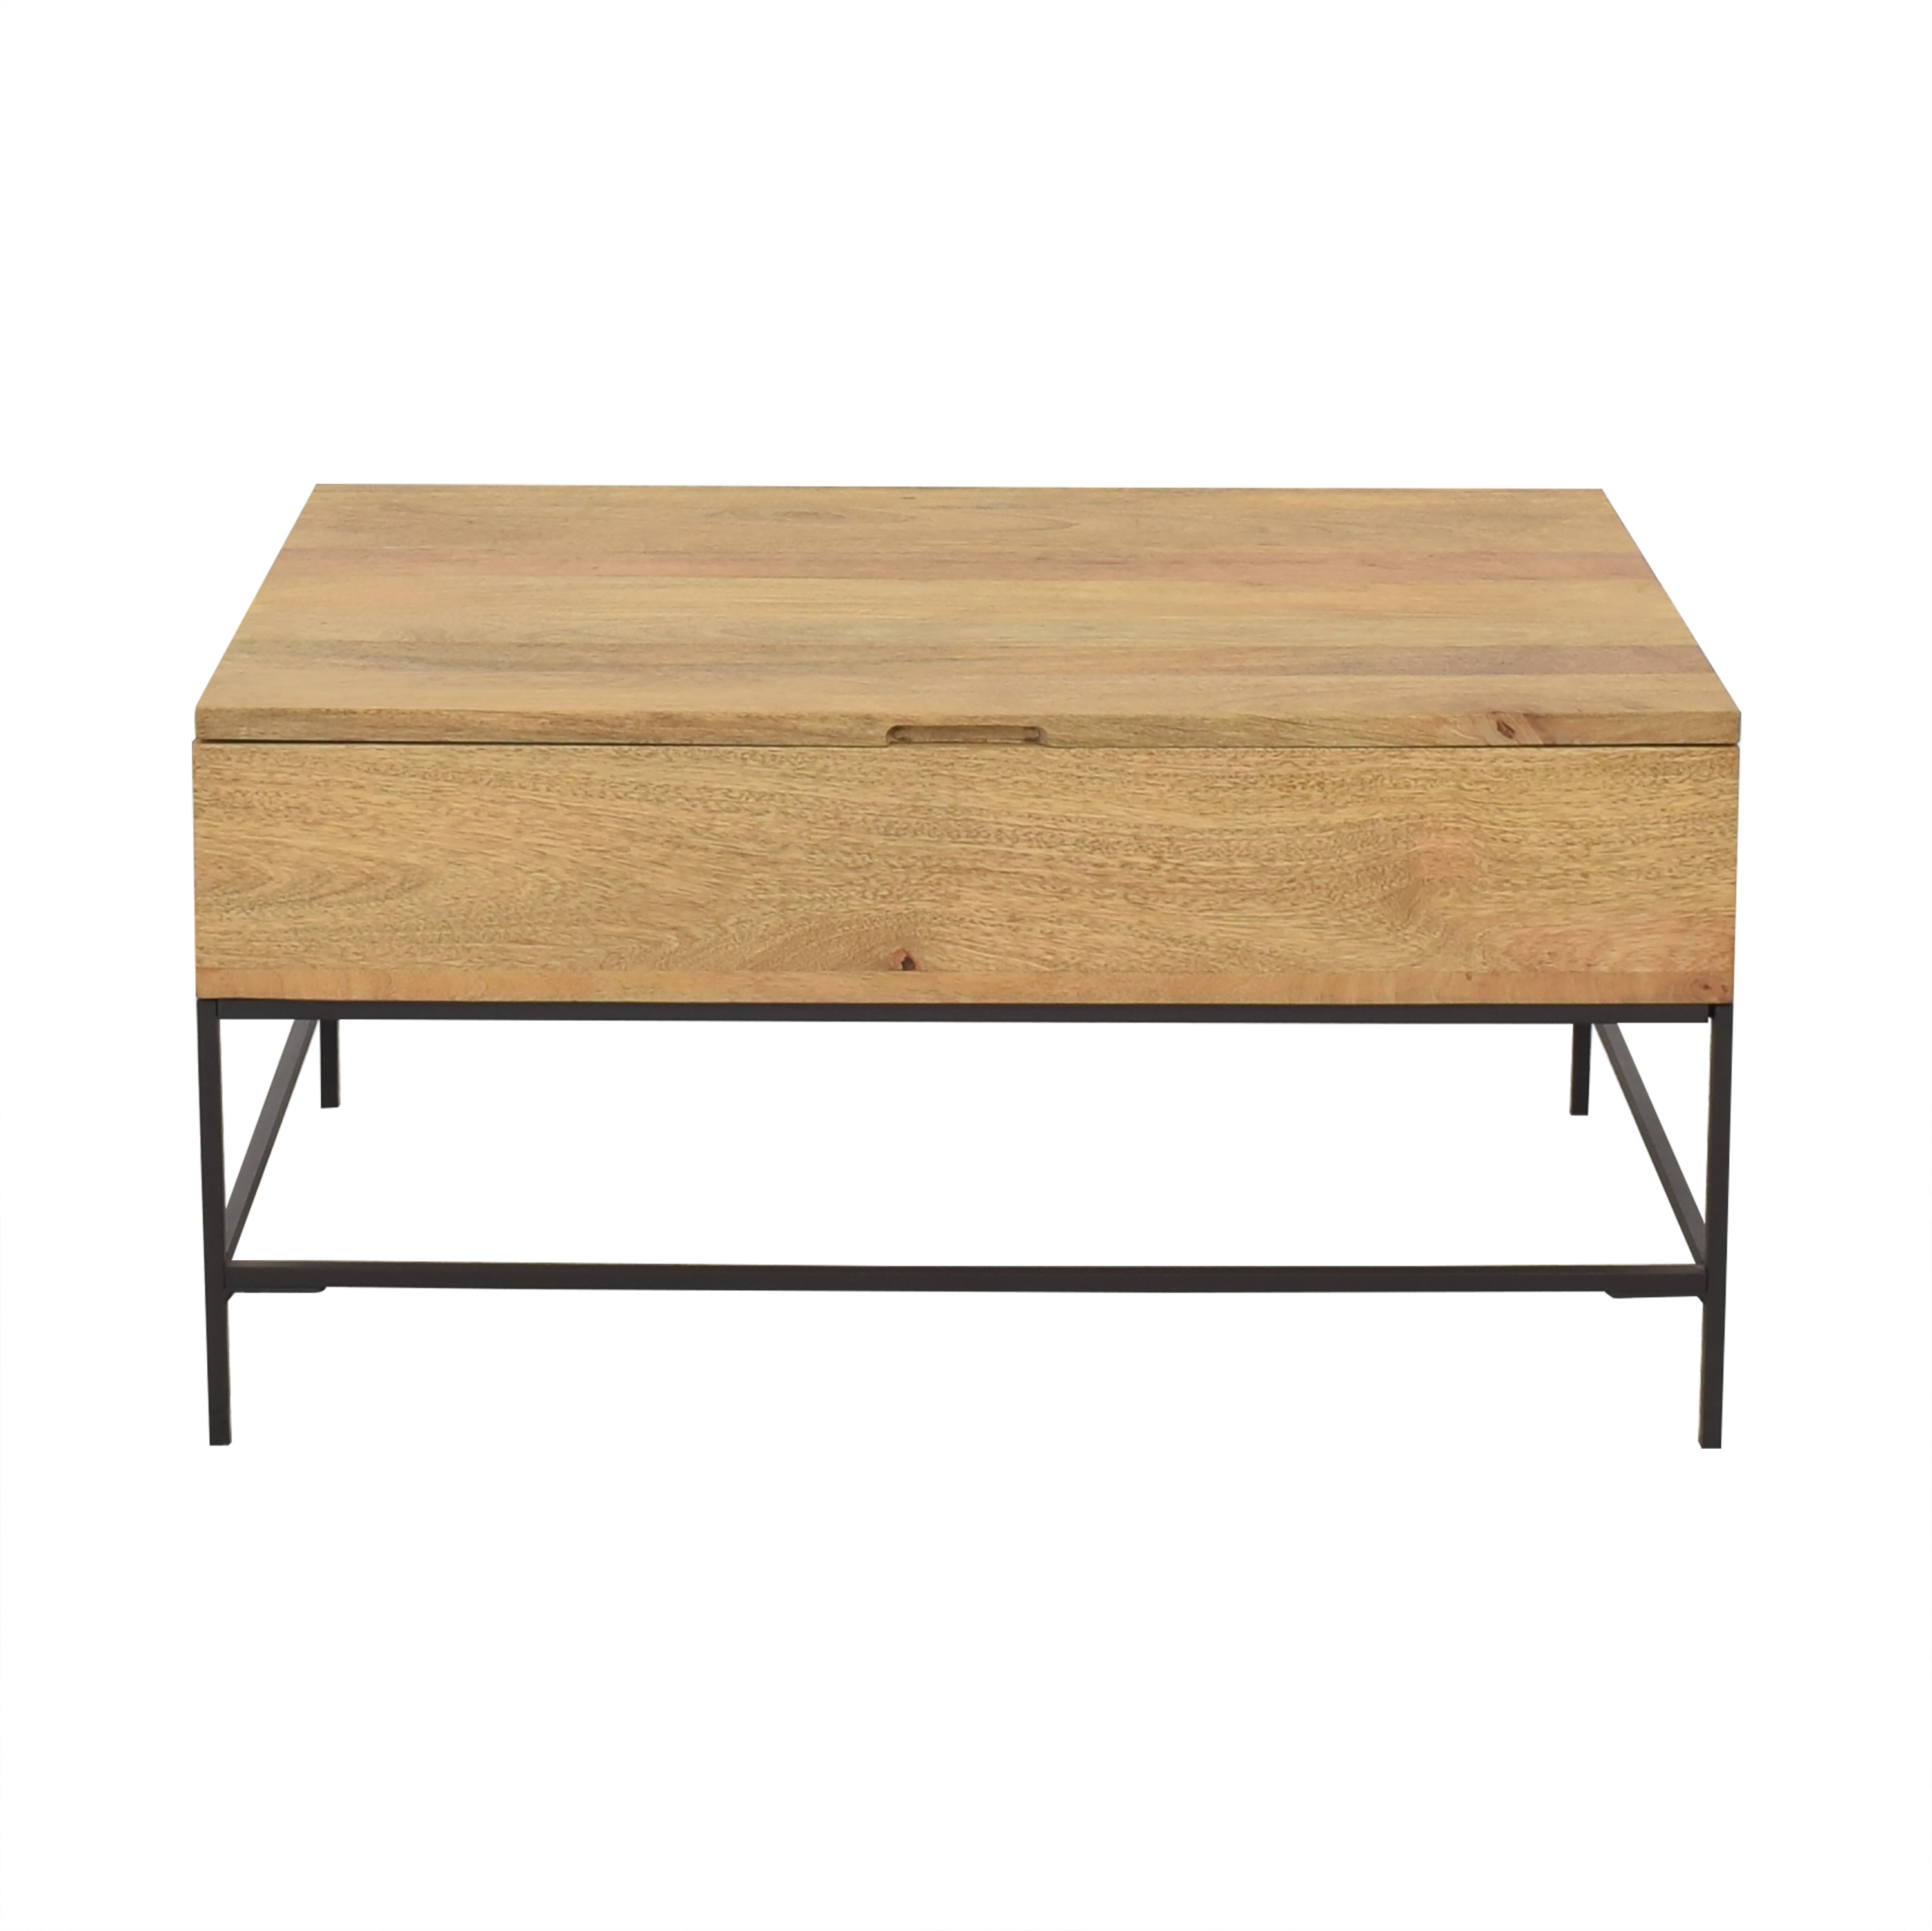 West Elm West Elm Industrial Storage Pop-Up Coffee Table ma